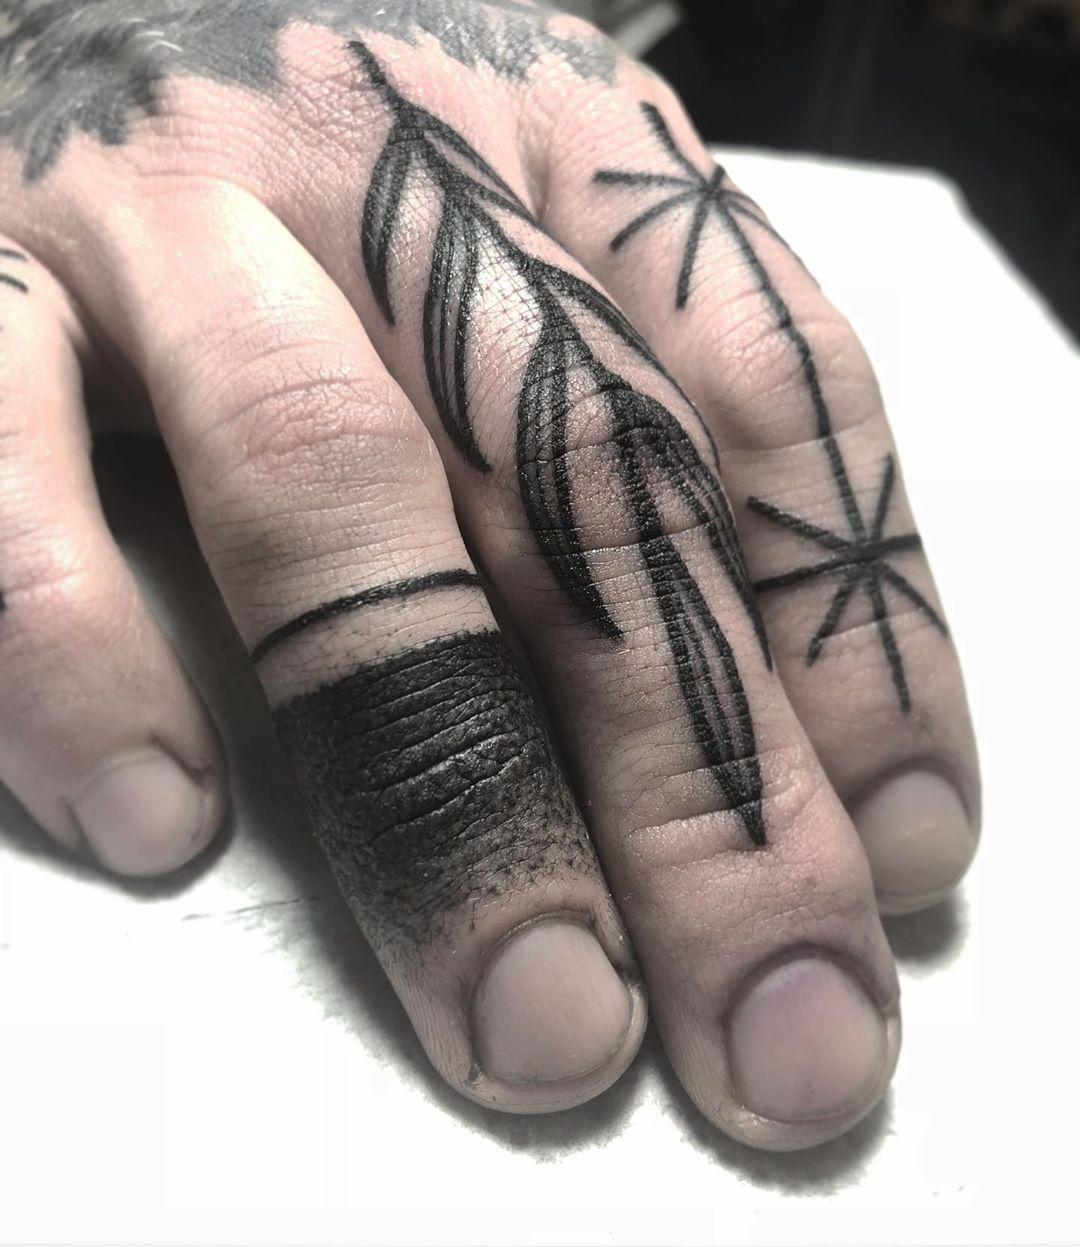 Fingers by @pau1terry_